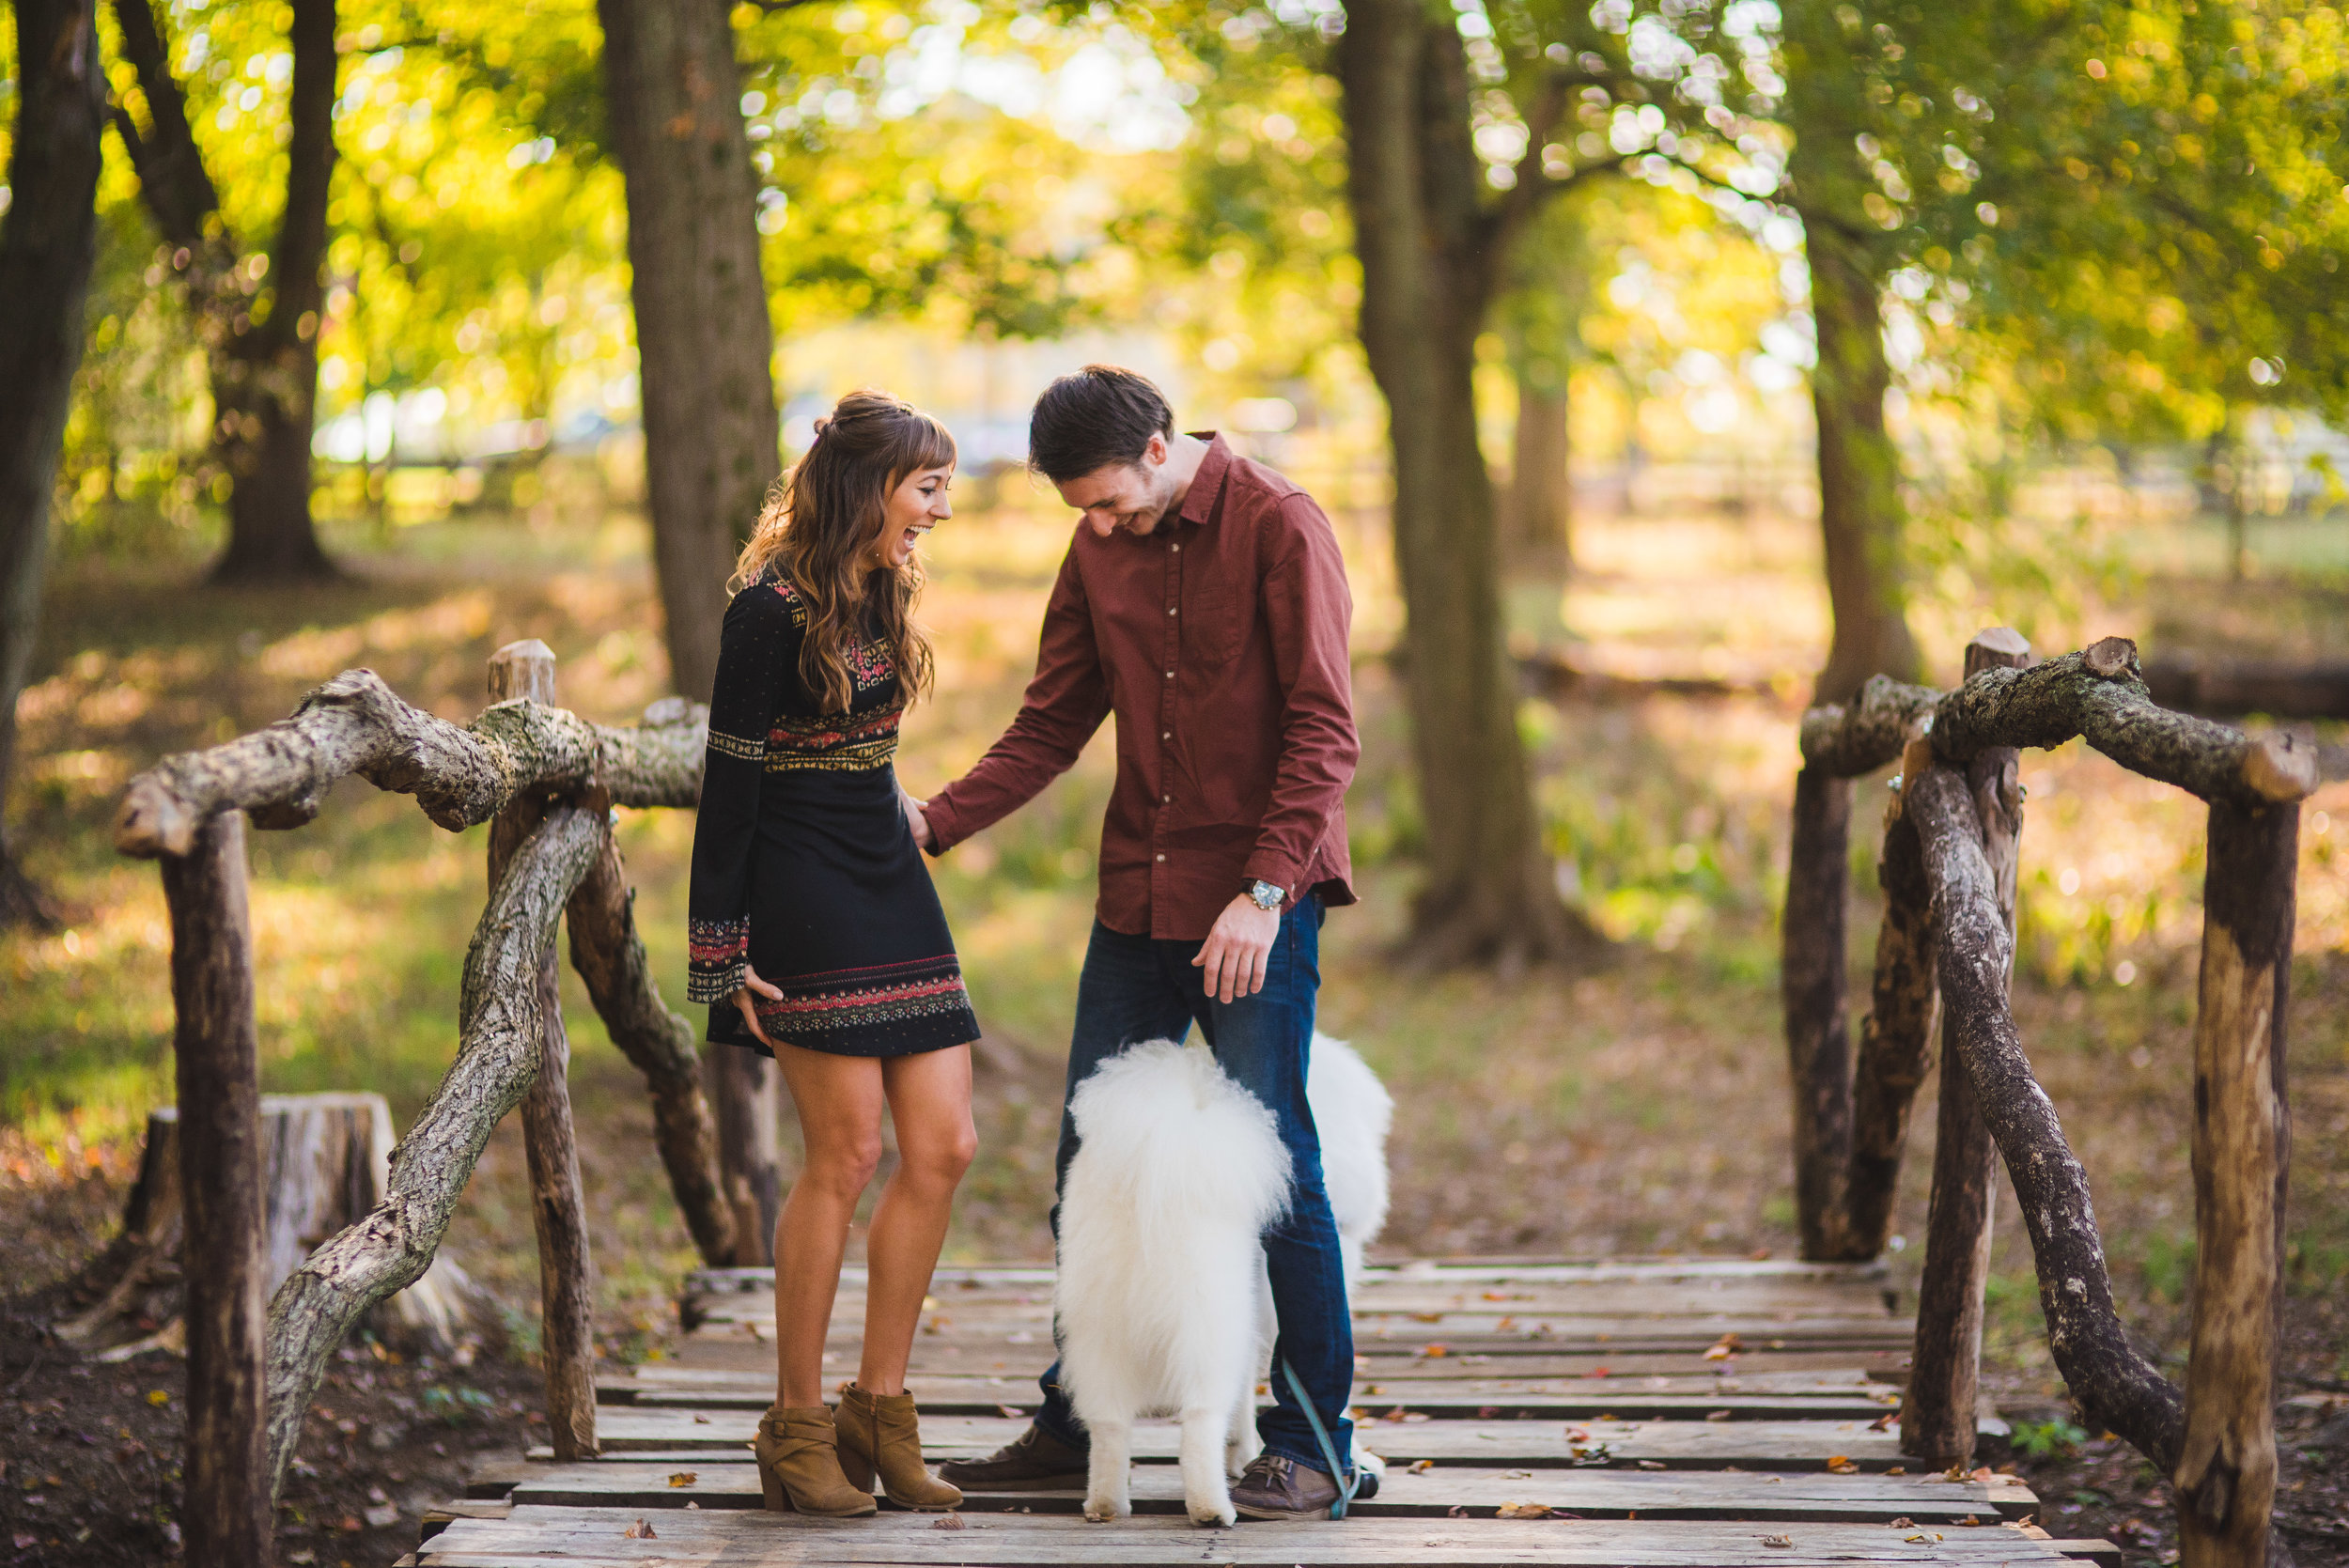 Silverbook Farm Engagement Session-3.jpg